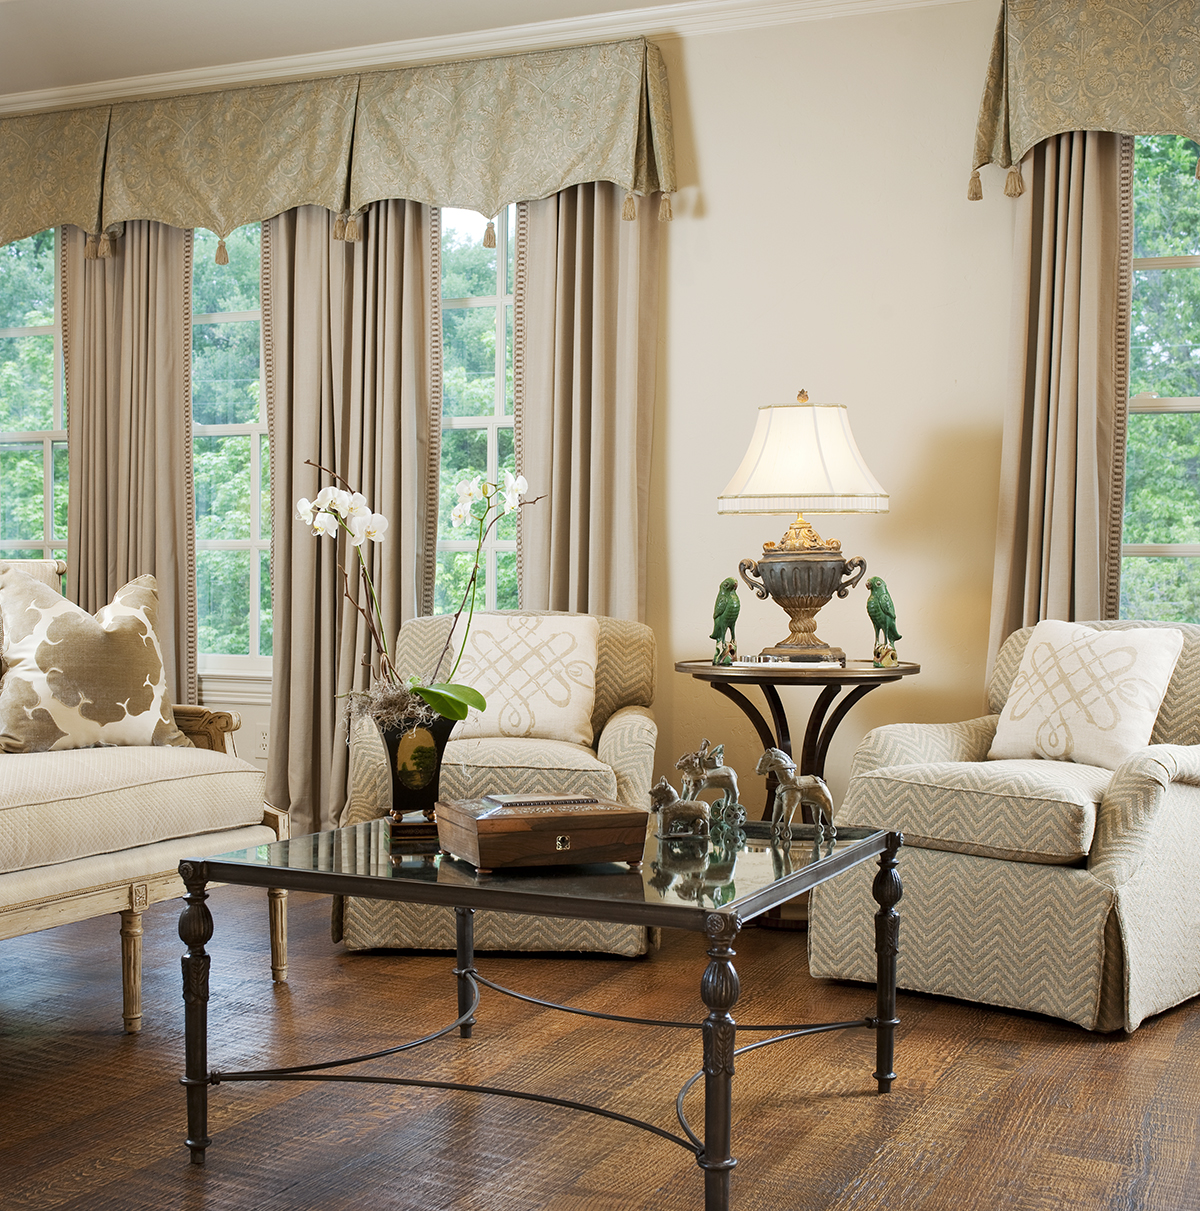 We incorporated antiques into this University Park bedroom while also using simple drapes, clean lines, and neutral tone-on-tone colors. The result is a room both classical and refreshingly modern.